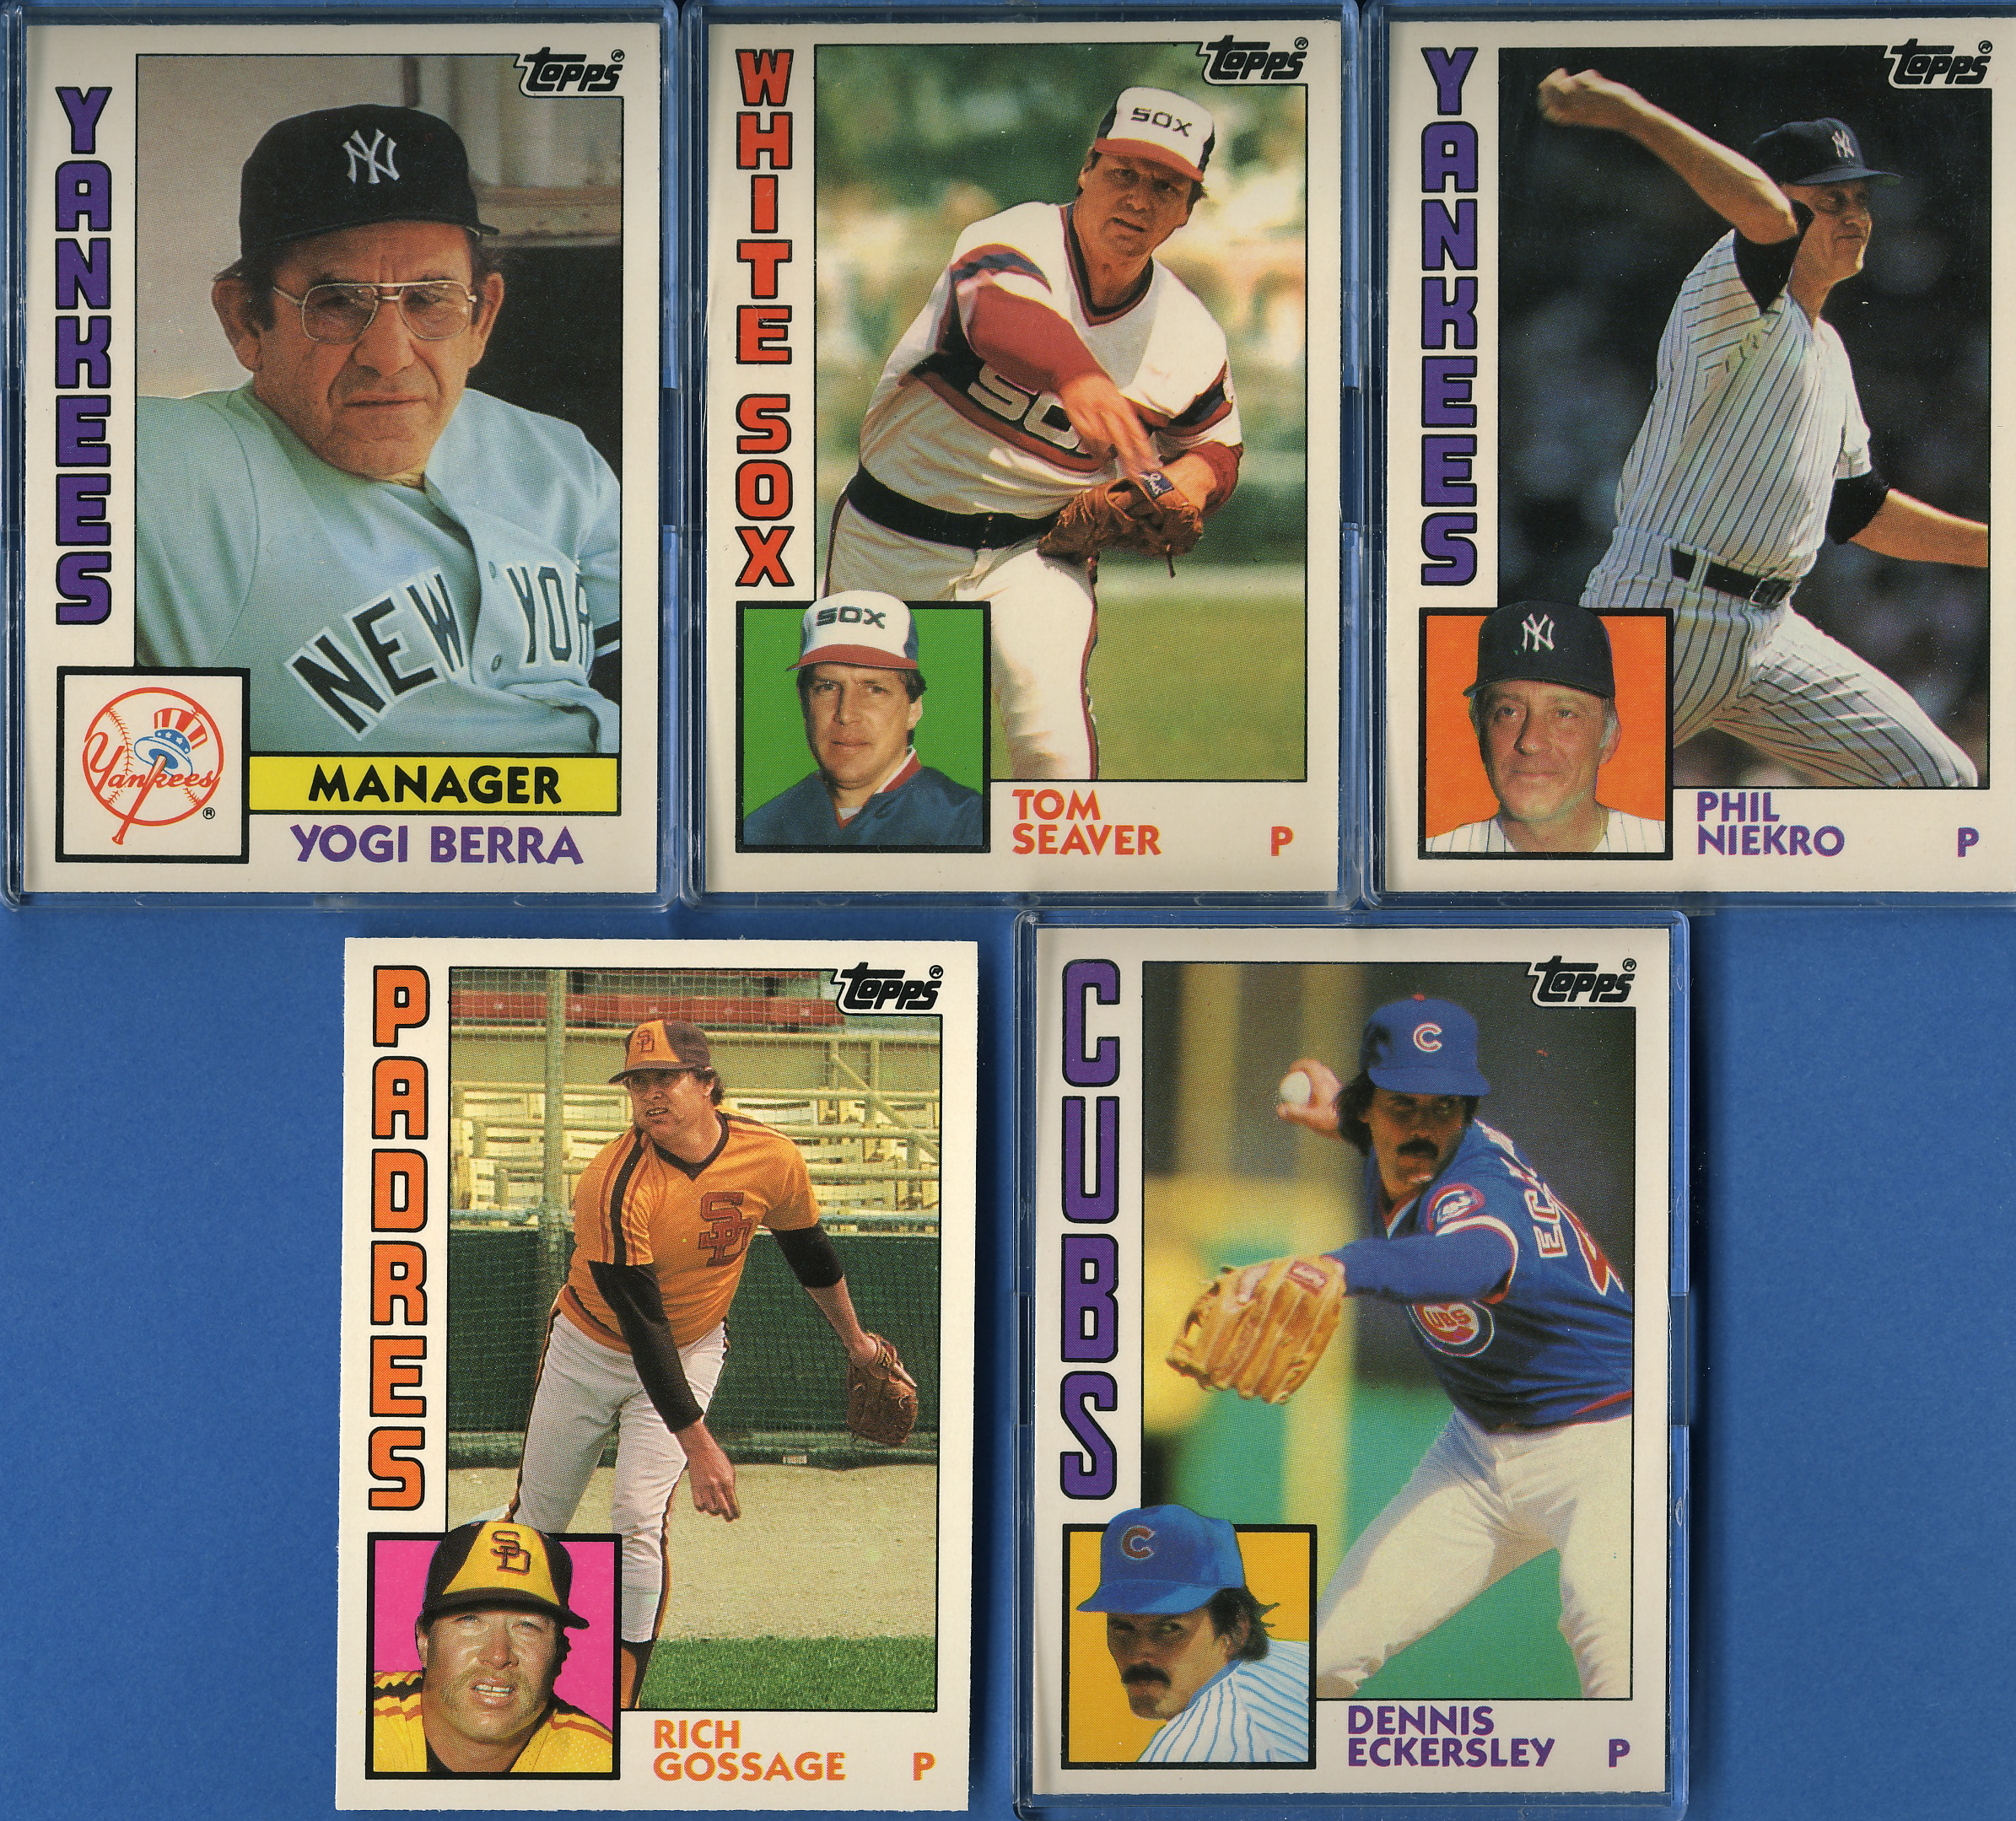 Plus Rookie Cards of Dwight Gooden and Bret Saberhagen Among Others. 1984 Topps Traded Baseball Series Complete 132 Card Set in Original Factory Set Box Contains Pete Rose and Tom Seaver